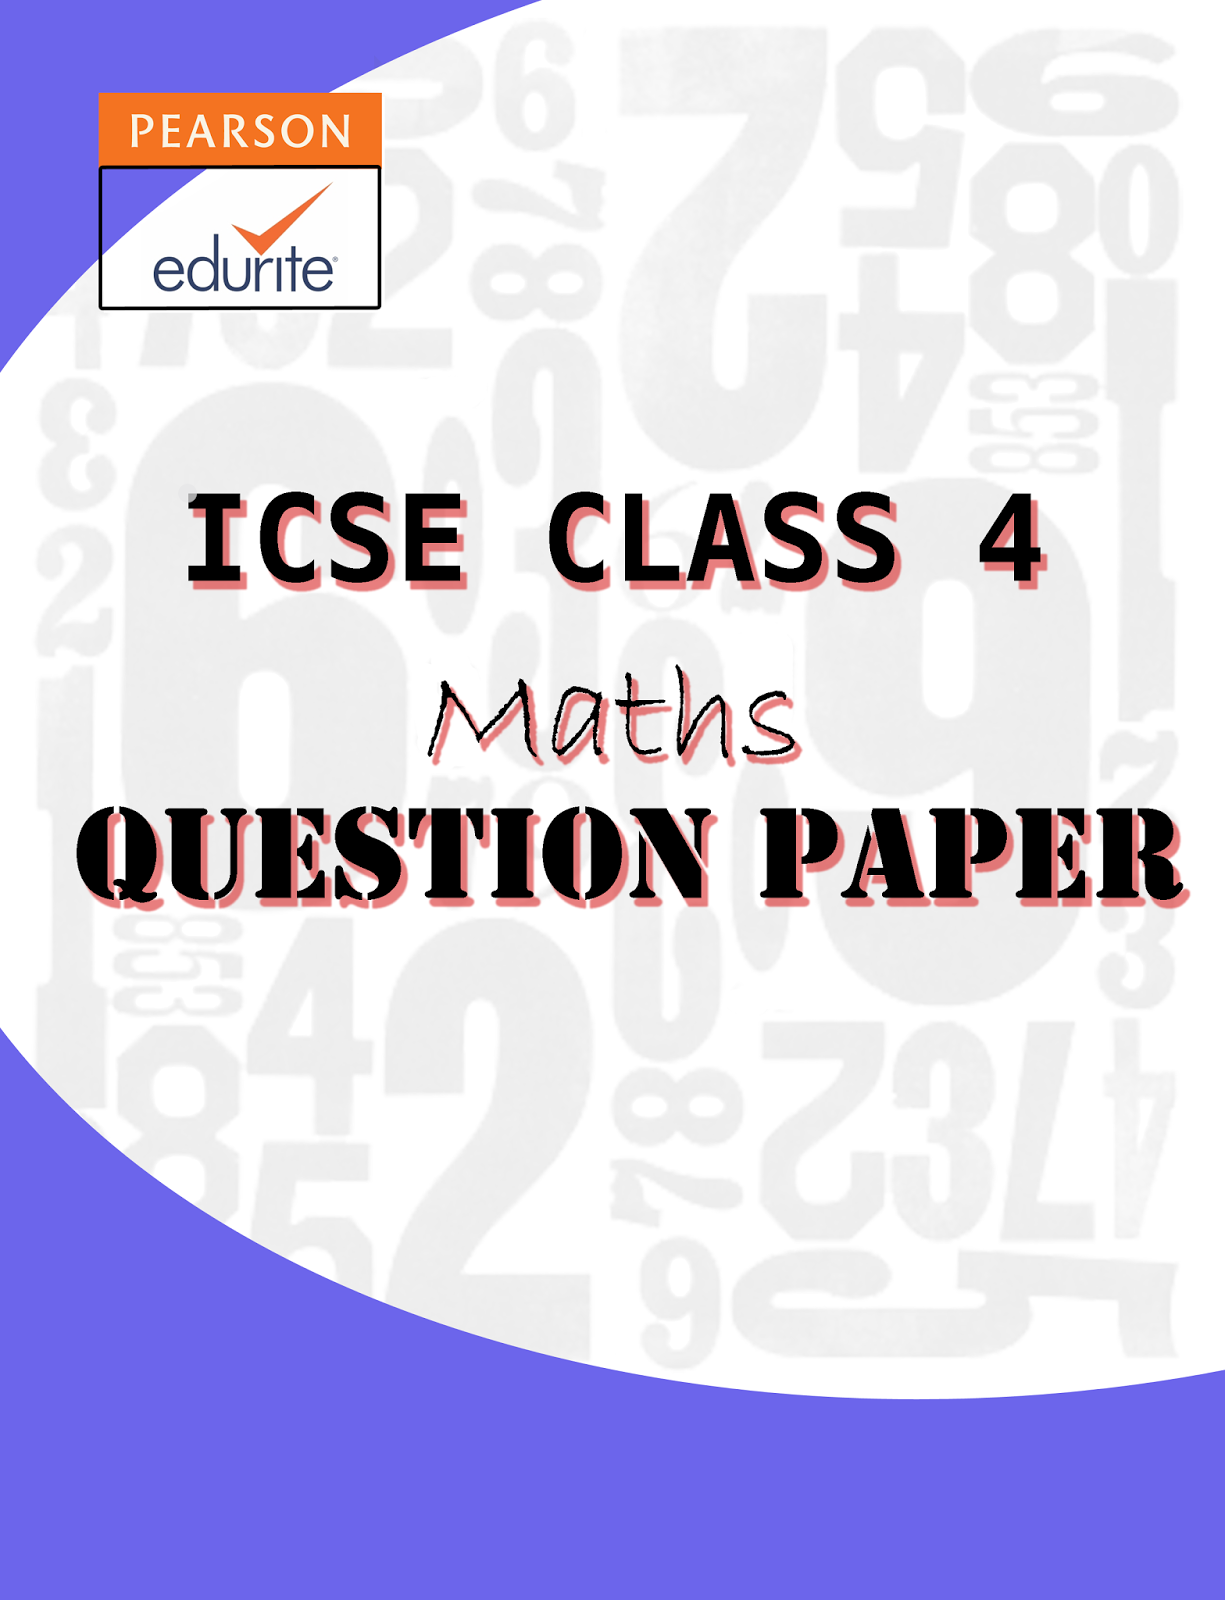 Icse Board Icse Class 4 Maths Question Paper